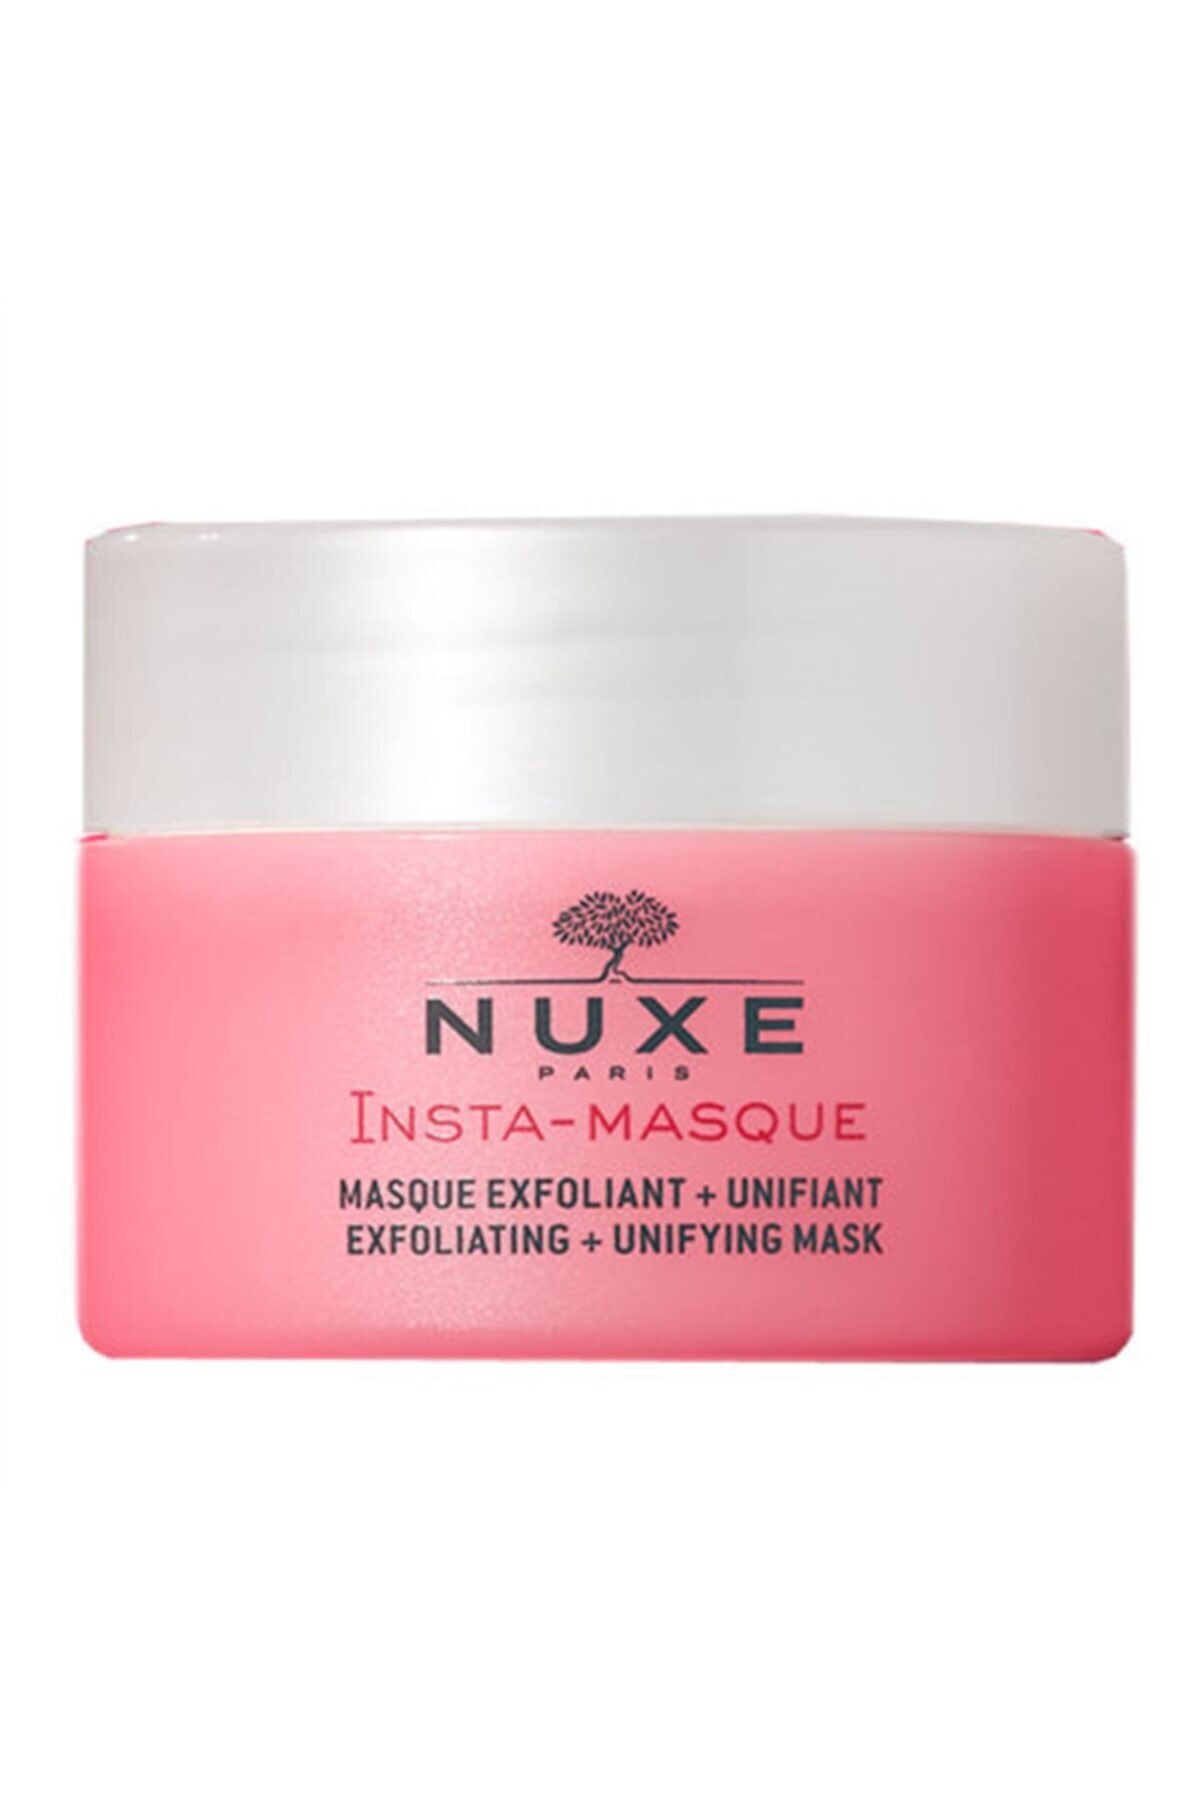 Nuxe Insta-masque Exfoliating + Unifying Mask 50ml 1